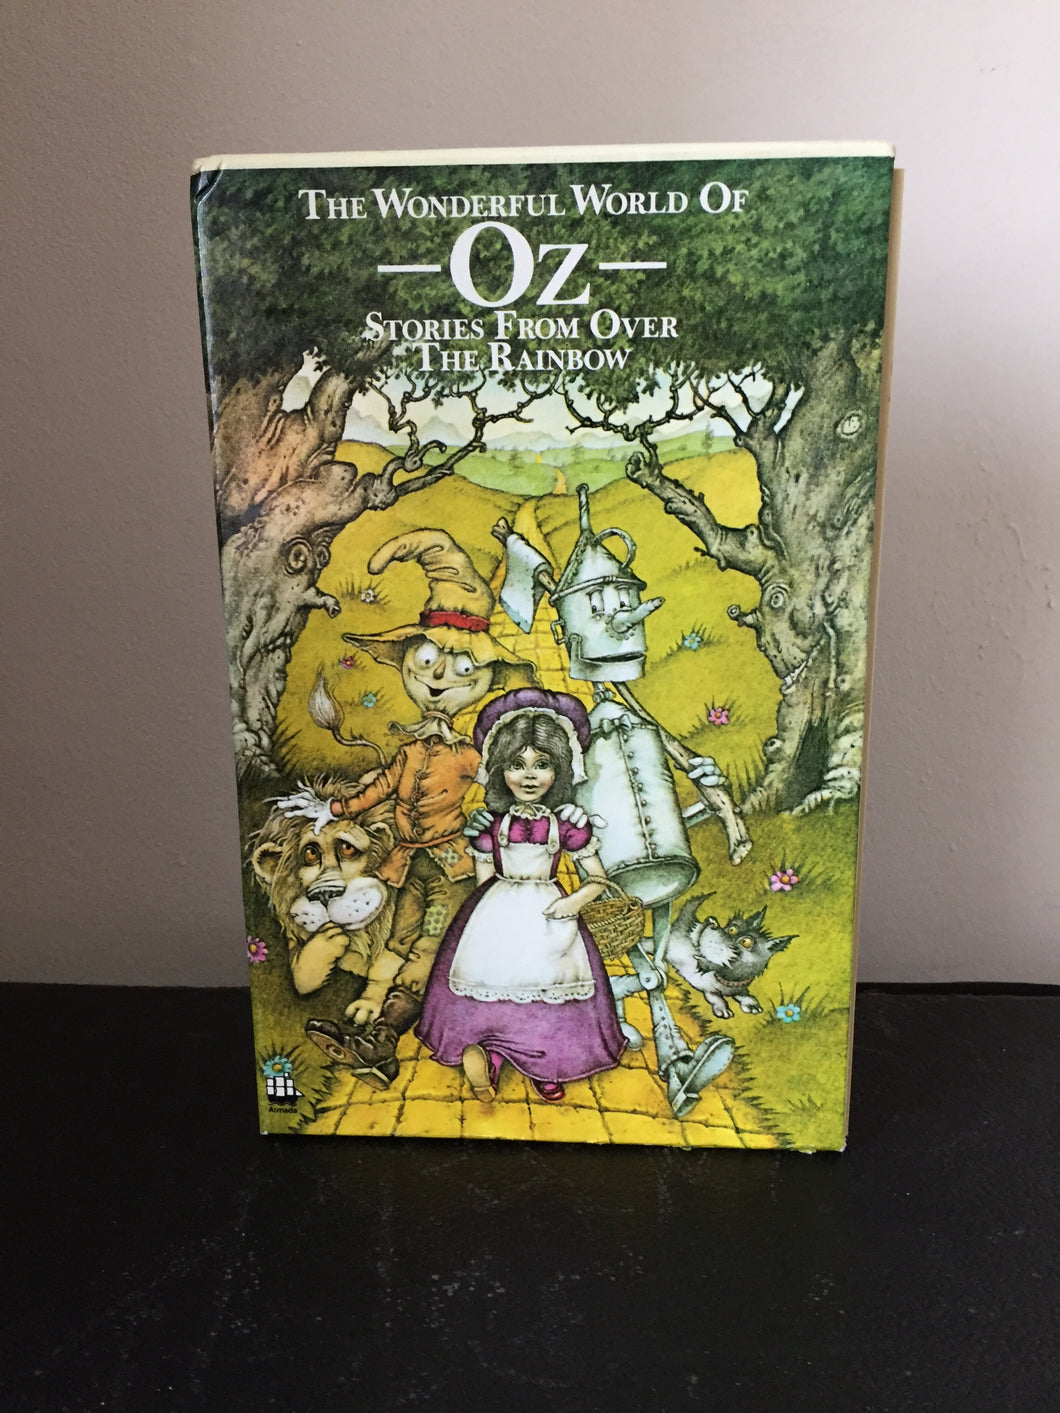 The Wonderful World of Oz. Stories From Over The Rainbow. 4 volume box-set